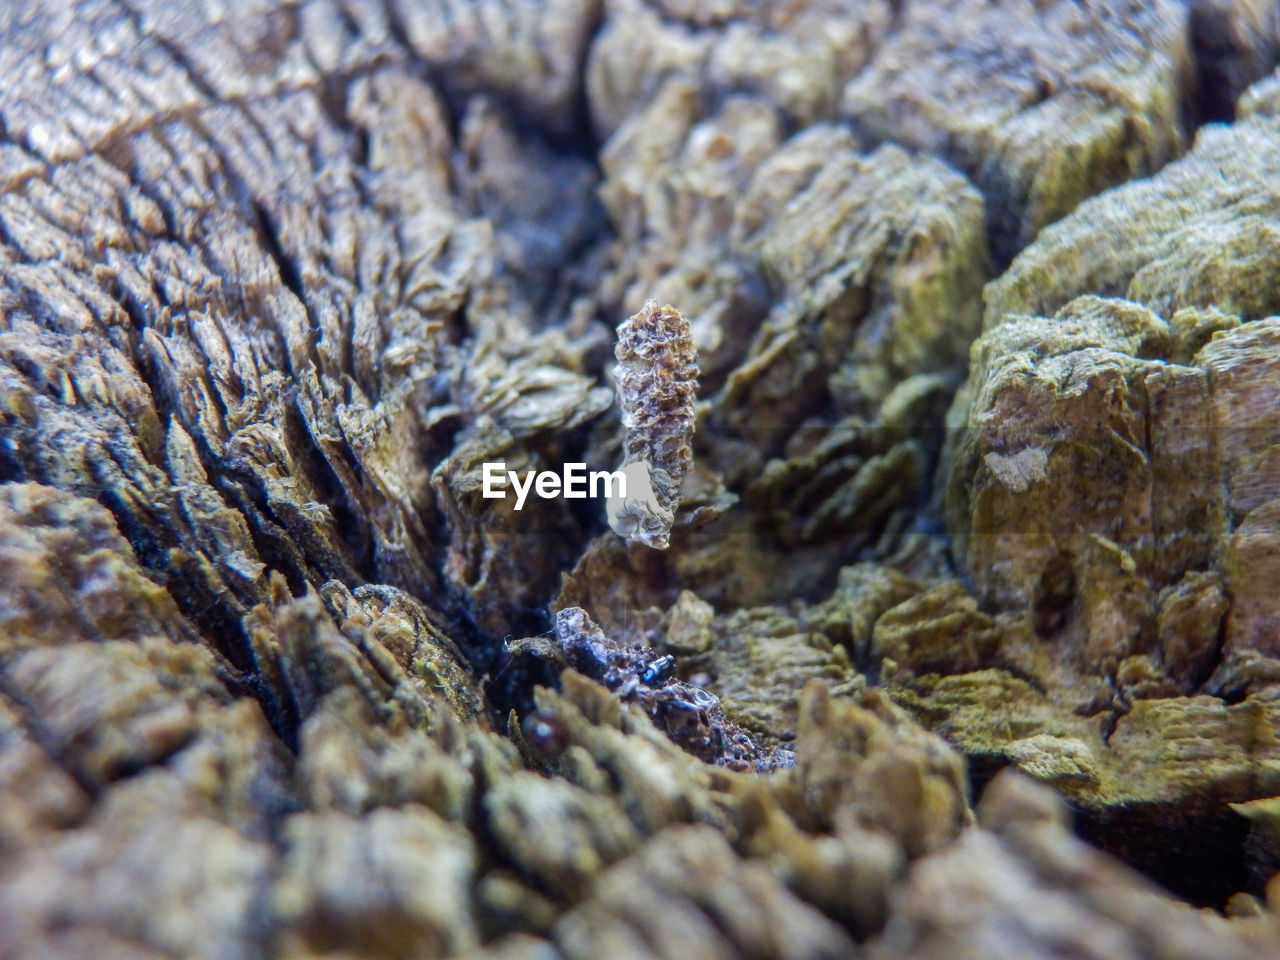 full frame, close-up, selective focus, backgrounds, no people, food and drink, food, indoors, textured, nature, healthcare and medicine, still life, extreme close-up, pattern, day, rock, invertebrate, animal wildlife, brown, marine